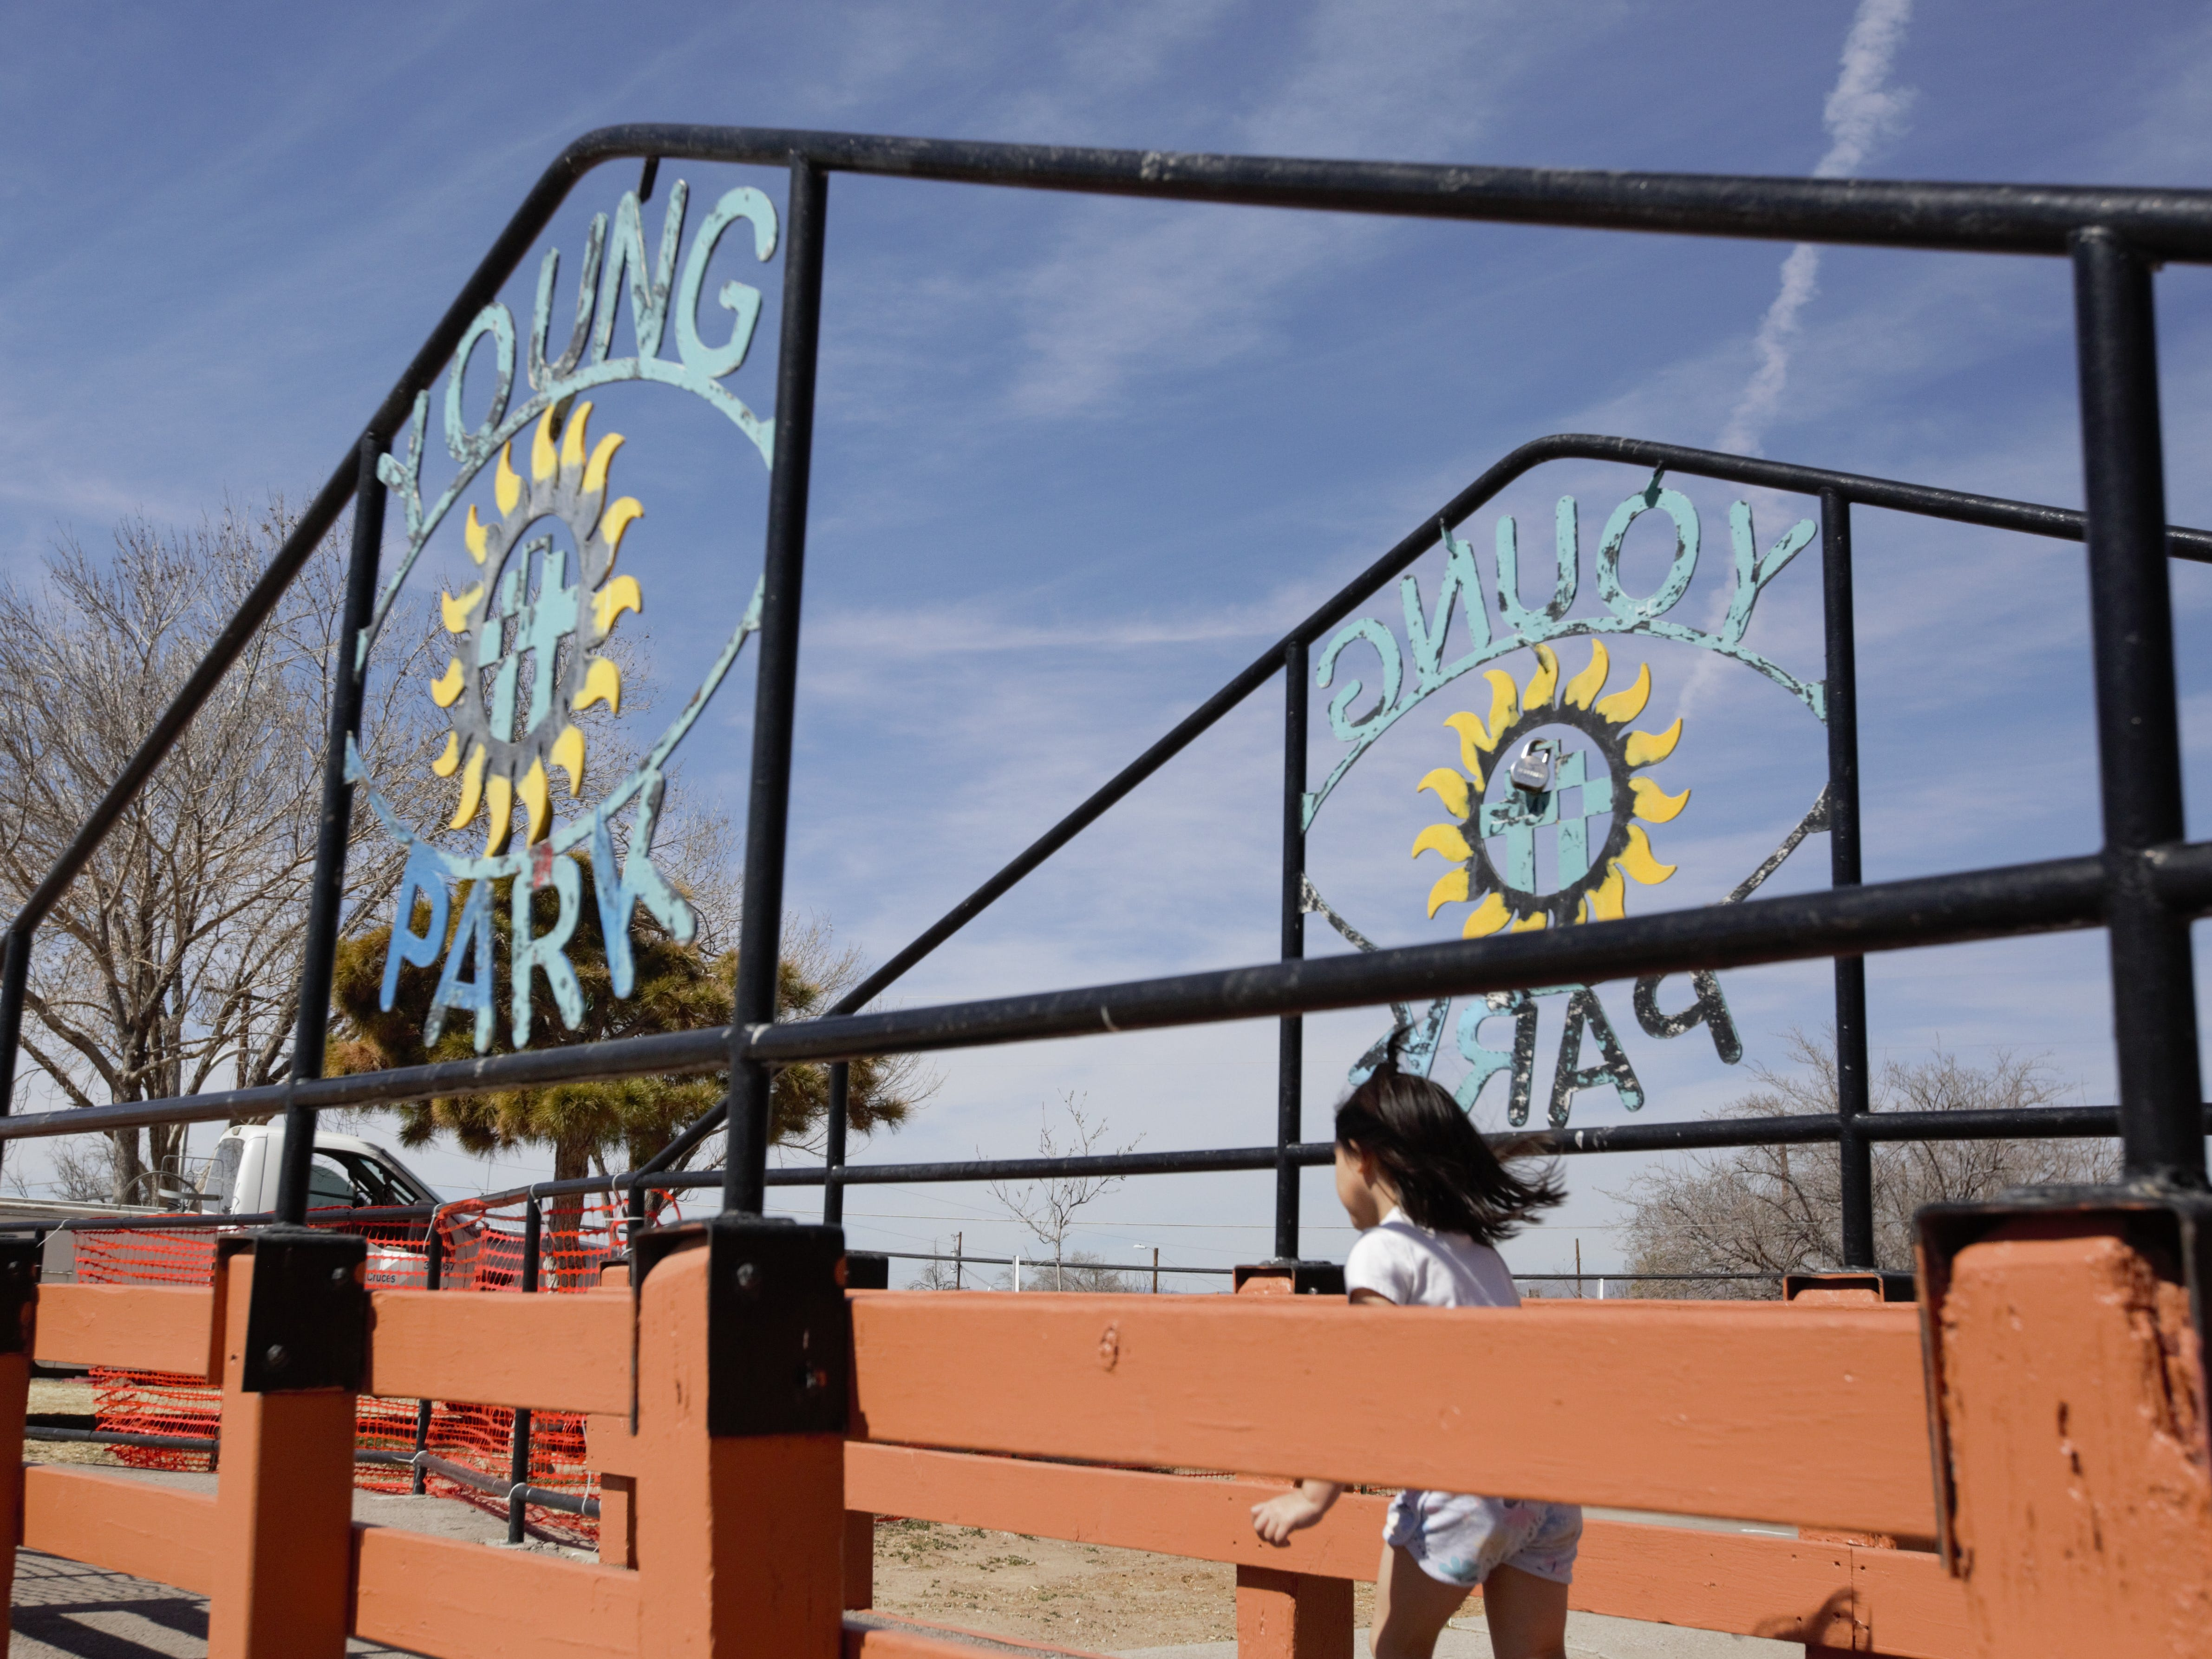 Katelyn Guzman, 4, dashes past iconic signs at Young Park on Monday, Feb. 25, 2019. The metal signs will be repainted in coming days as part of an ongoing pond refurbishment project.